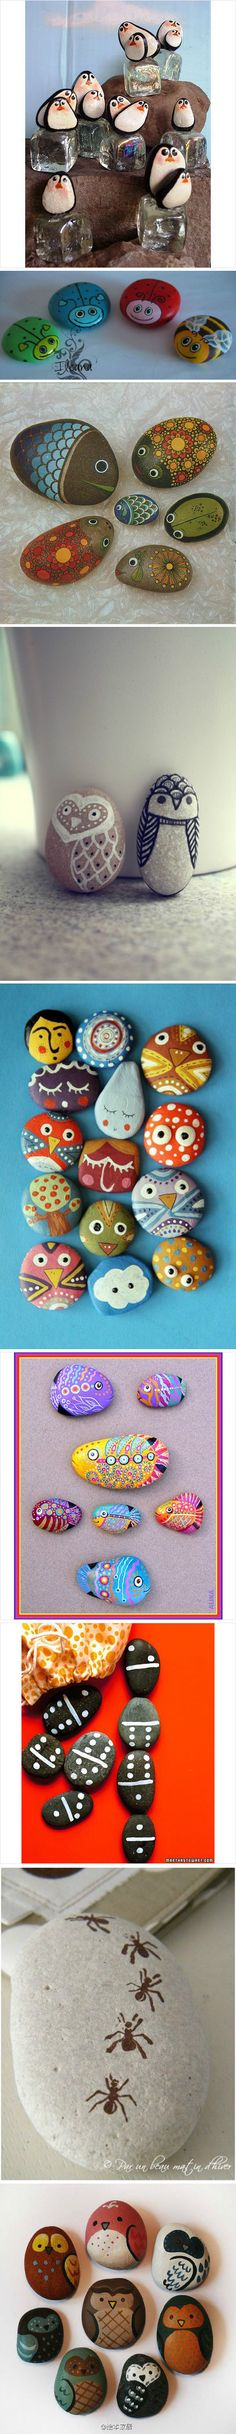 painted rocks - love the penguins